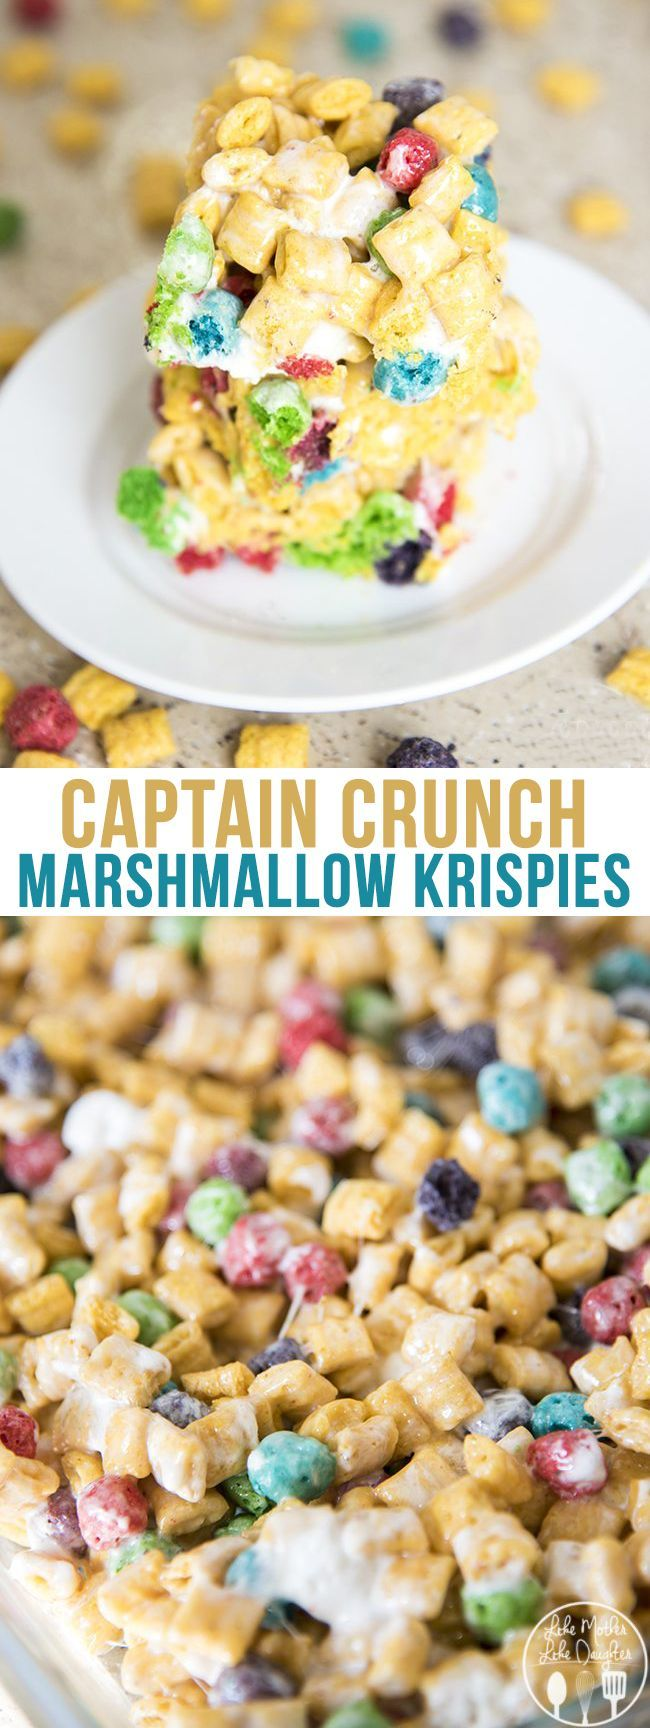 Captain crunch rice krispies are gooey cereal bars made ...